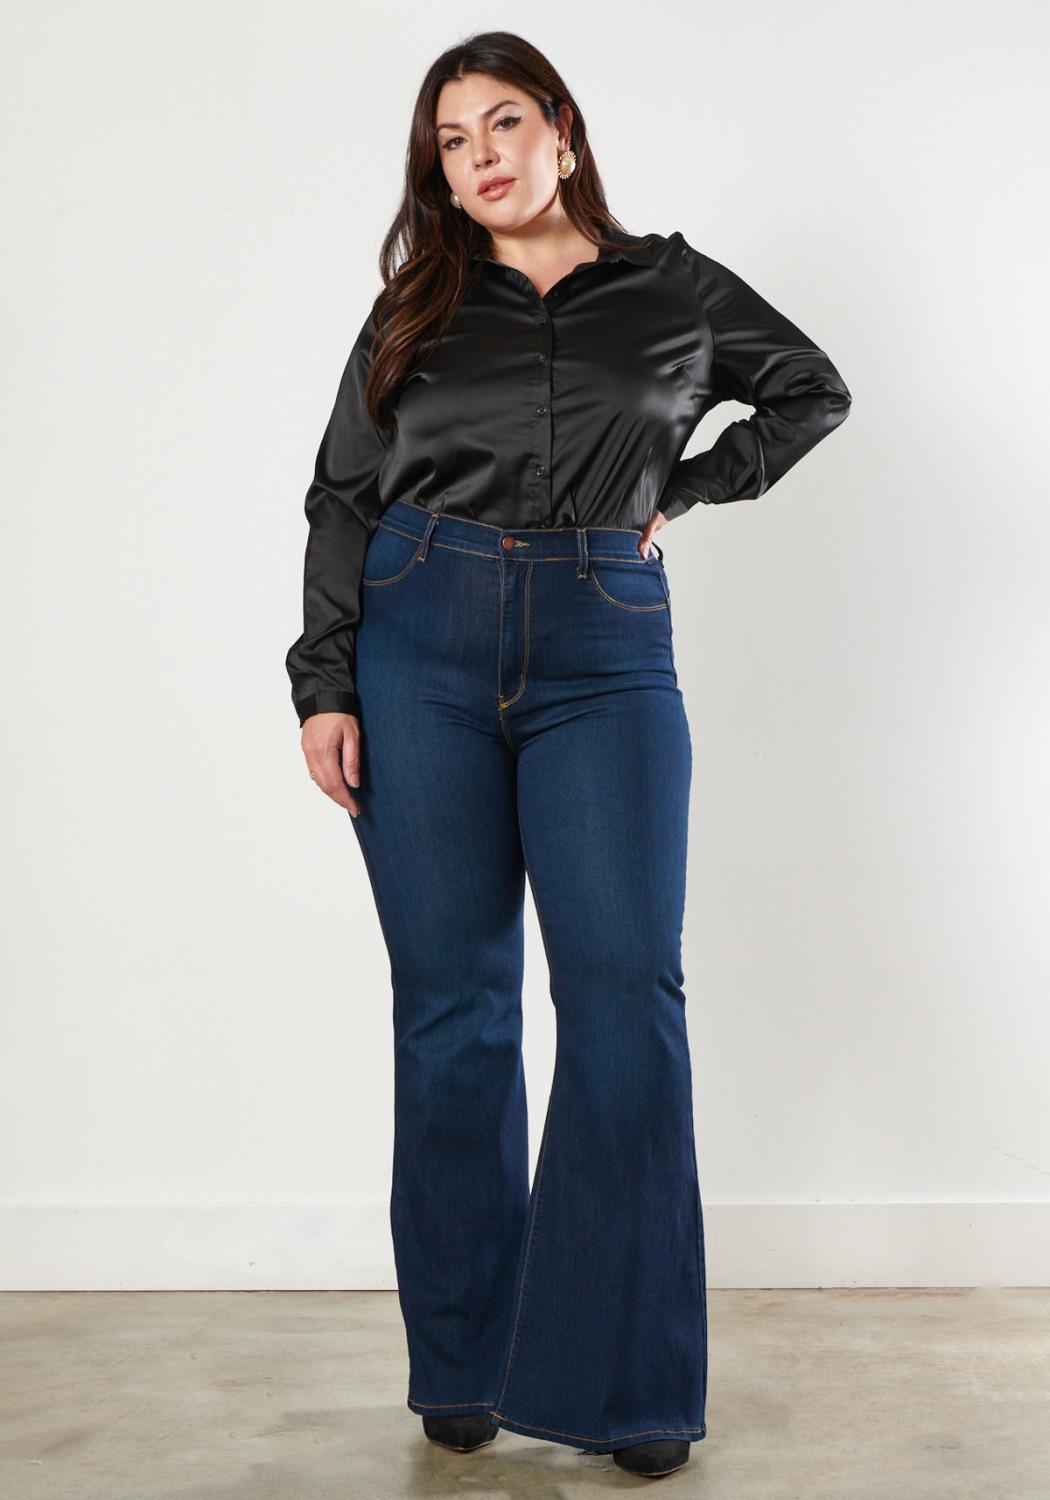 PLUS Sweetheart Flare Jeans